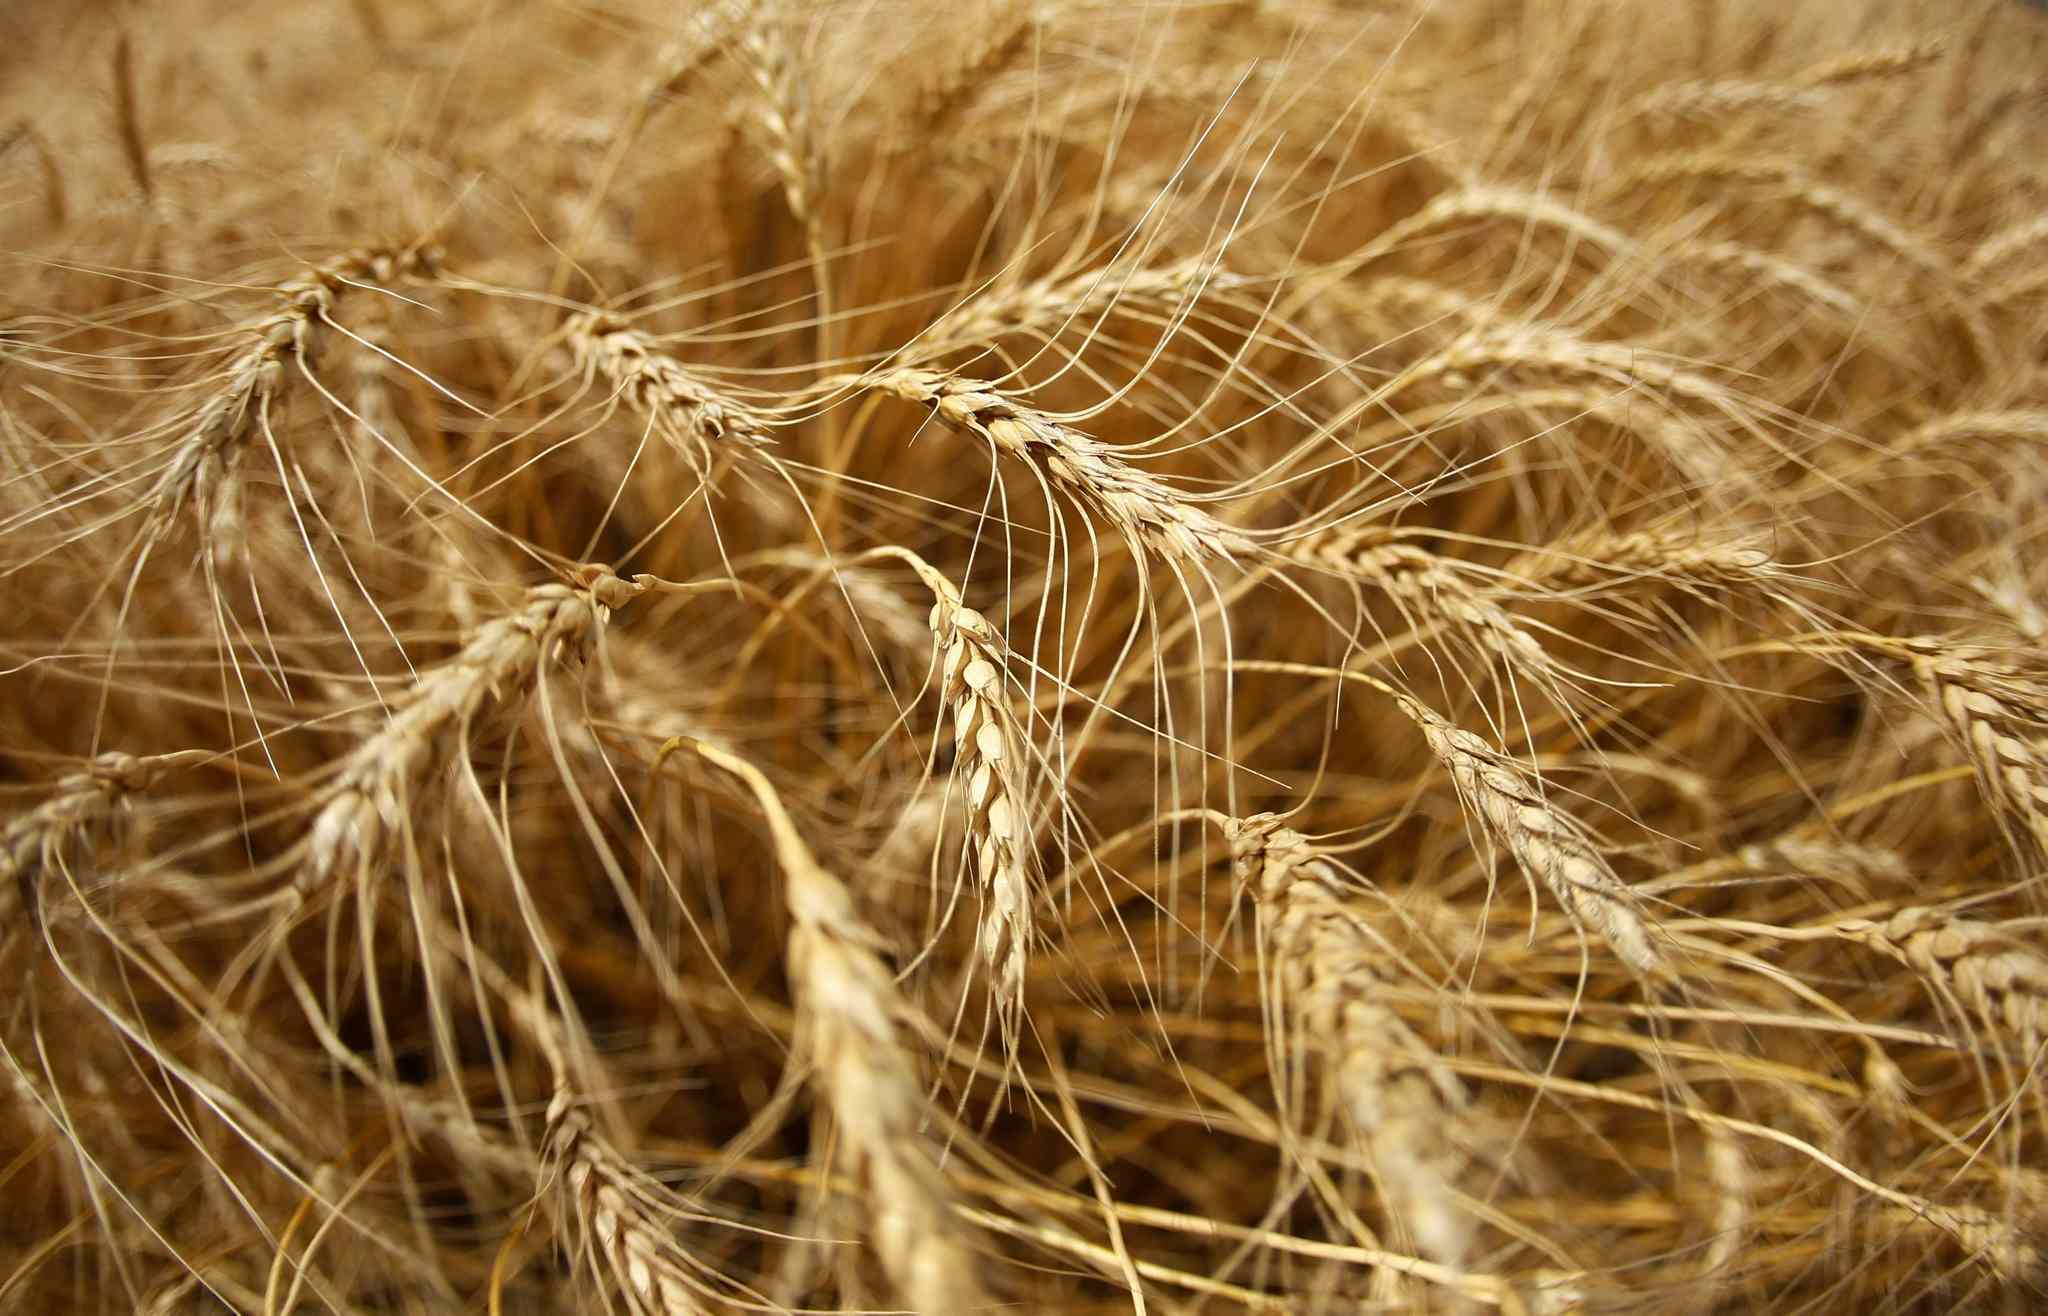 The demand for wheat has peaked according to Dan Basse, president of Chicago-based AgResource Corp.